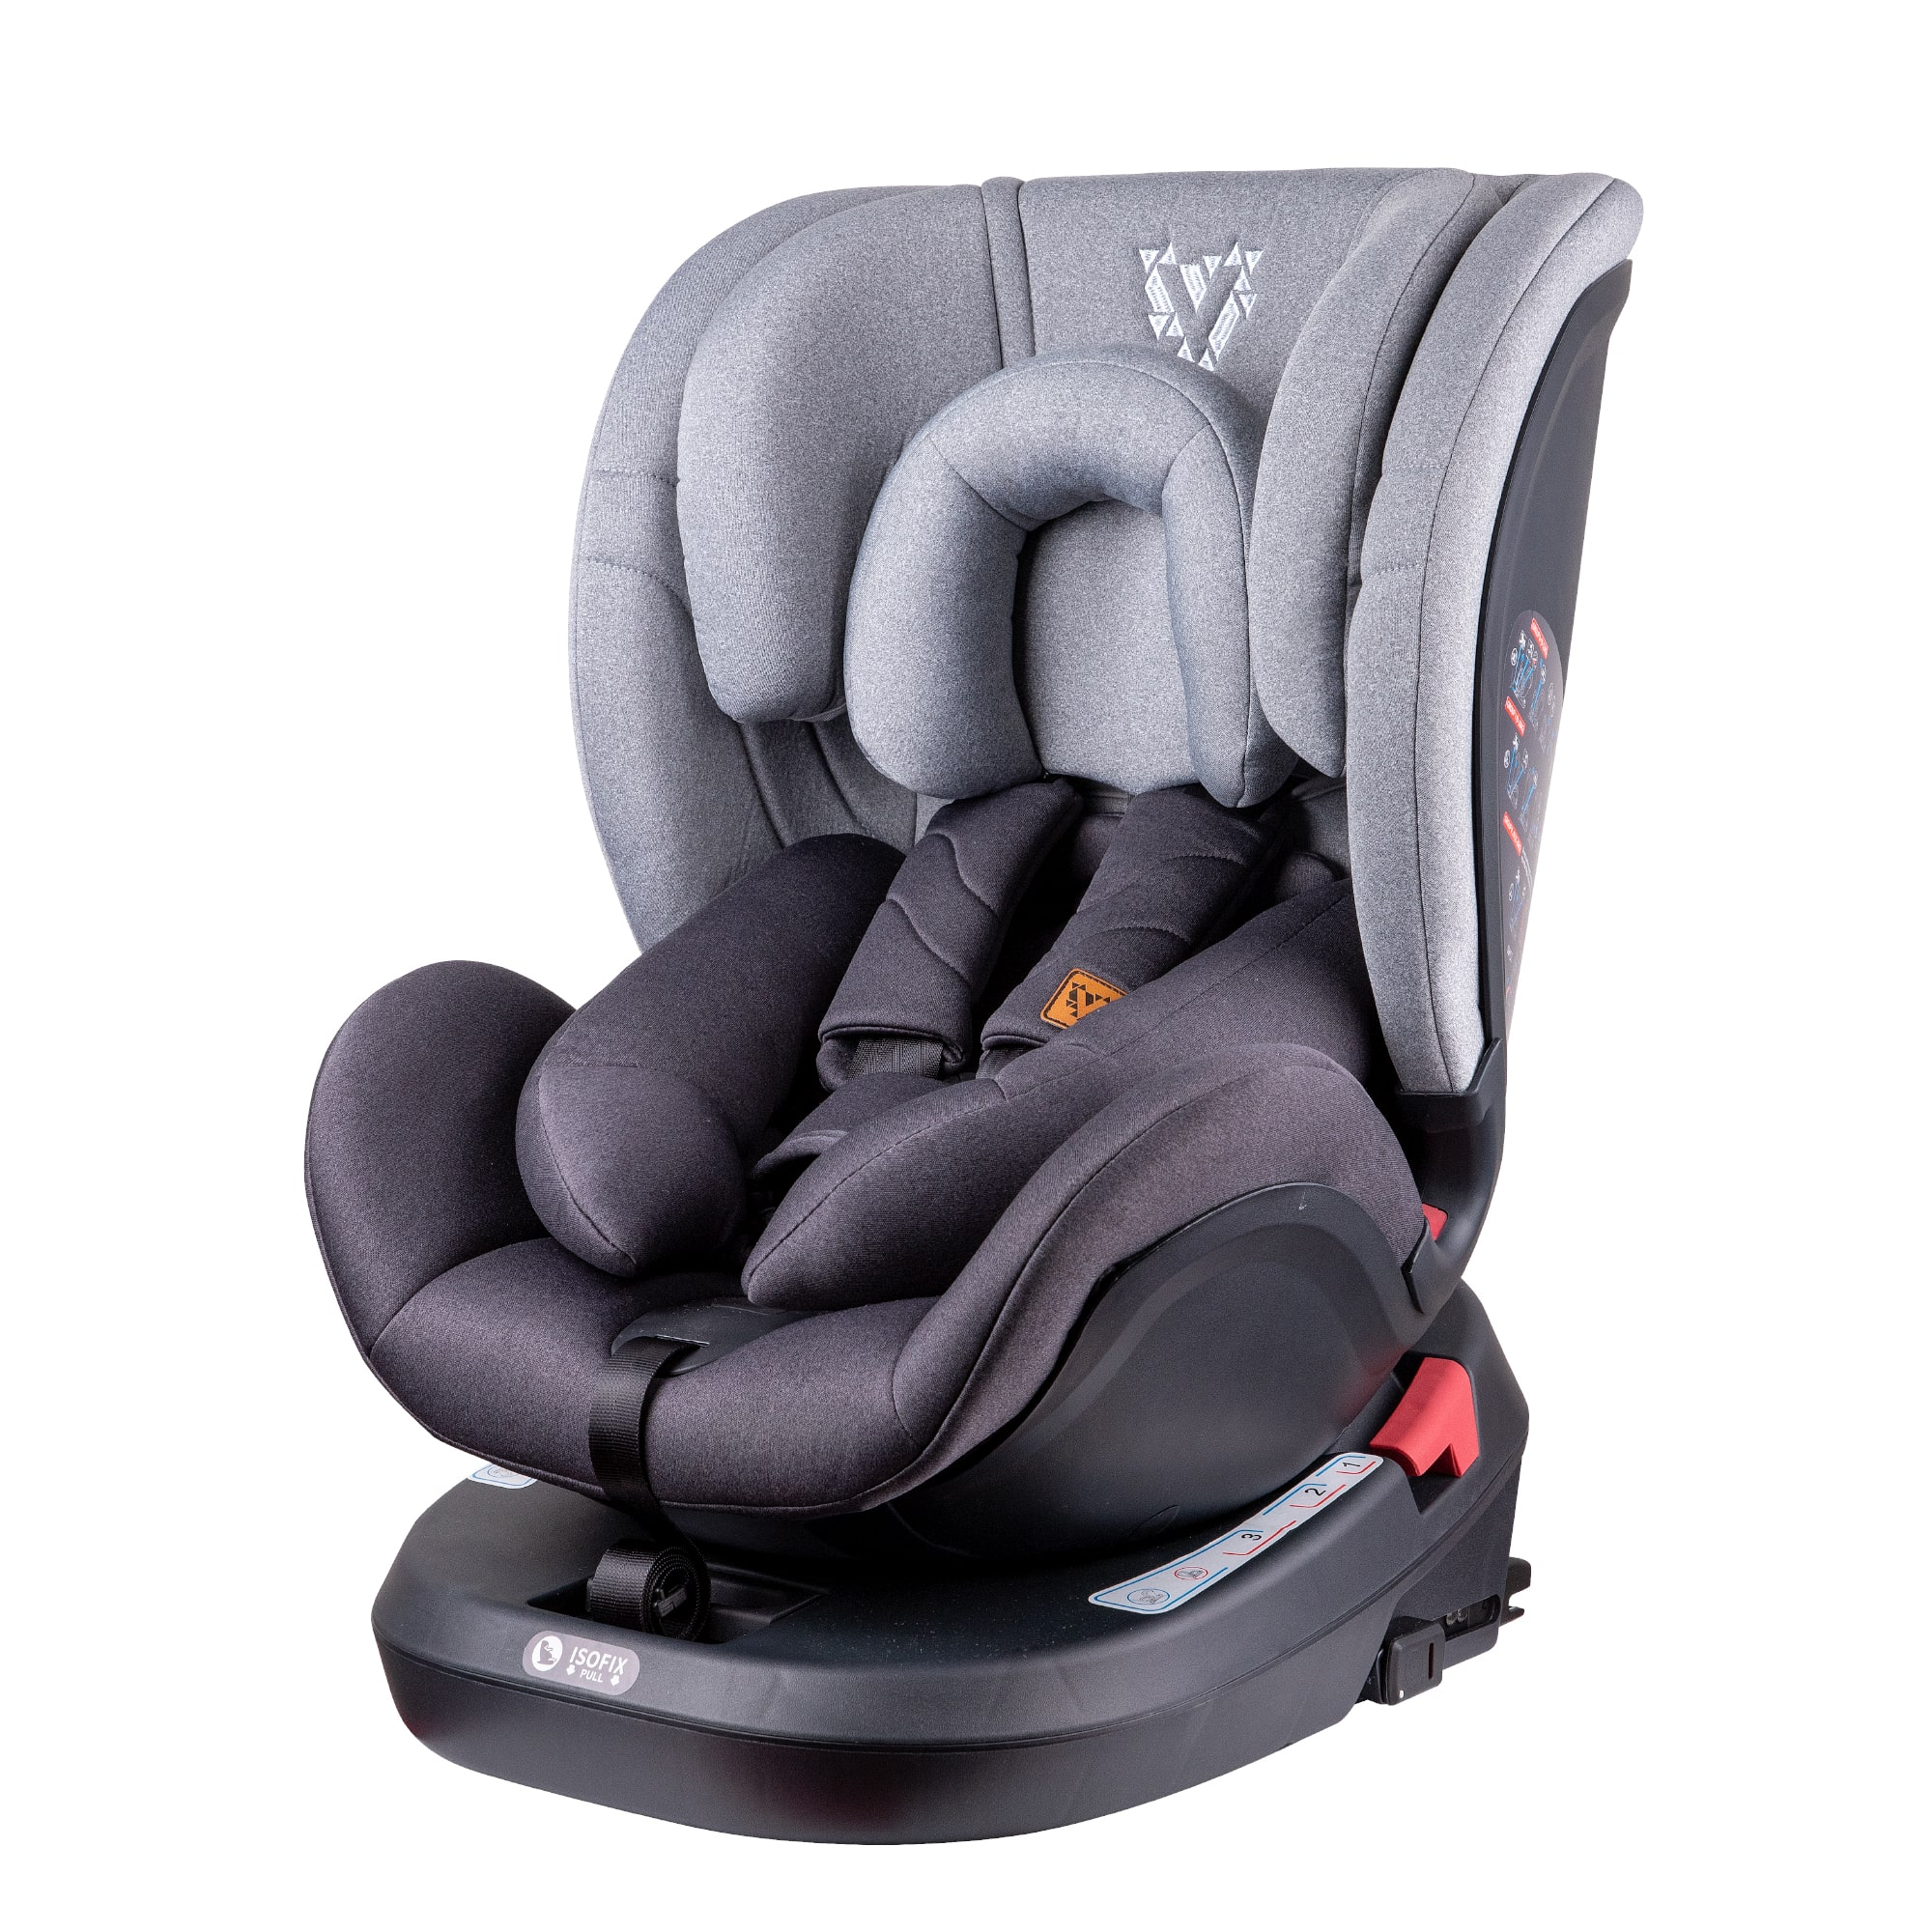 The Venture Fustion 360 Car Seat in Grey